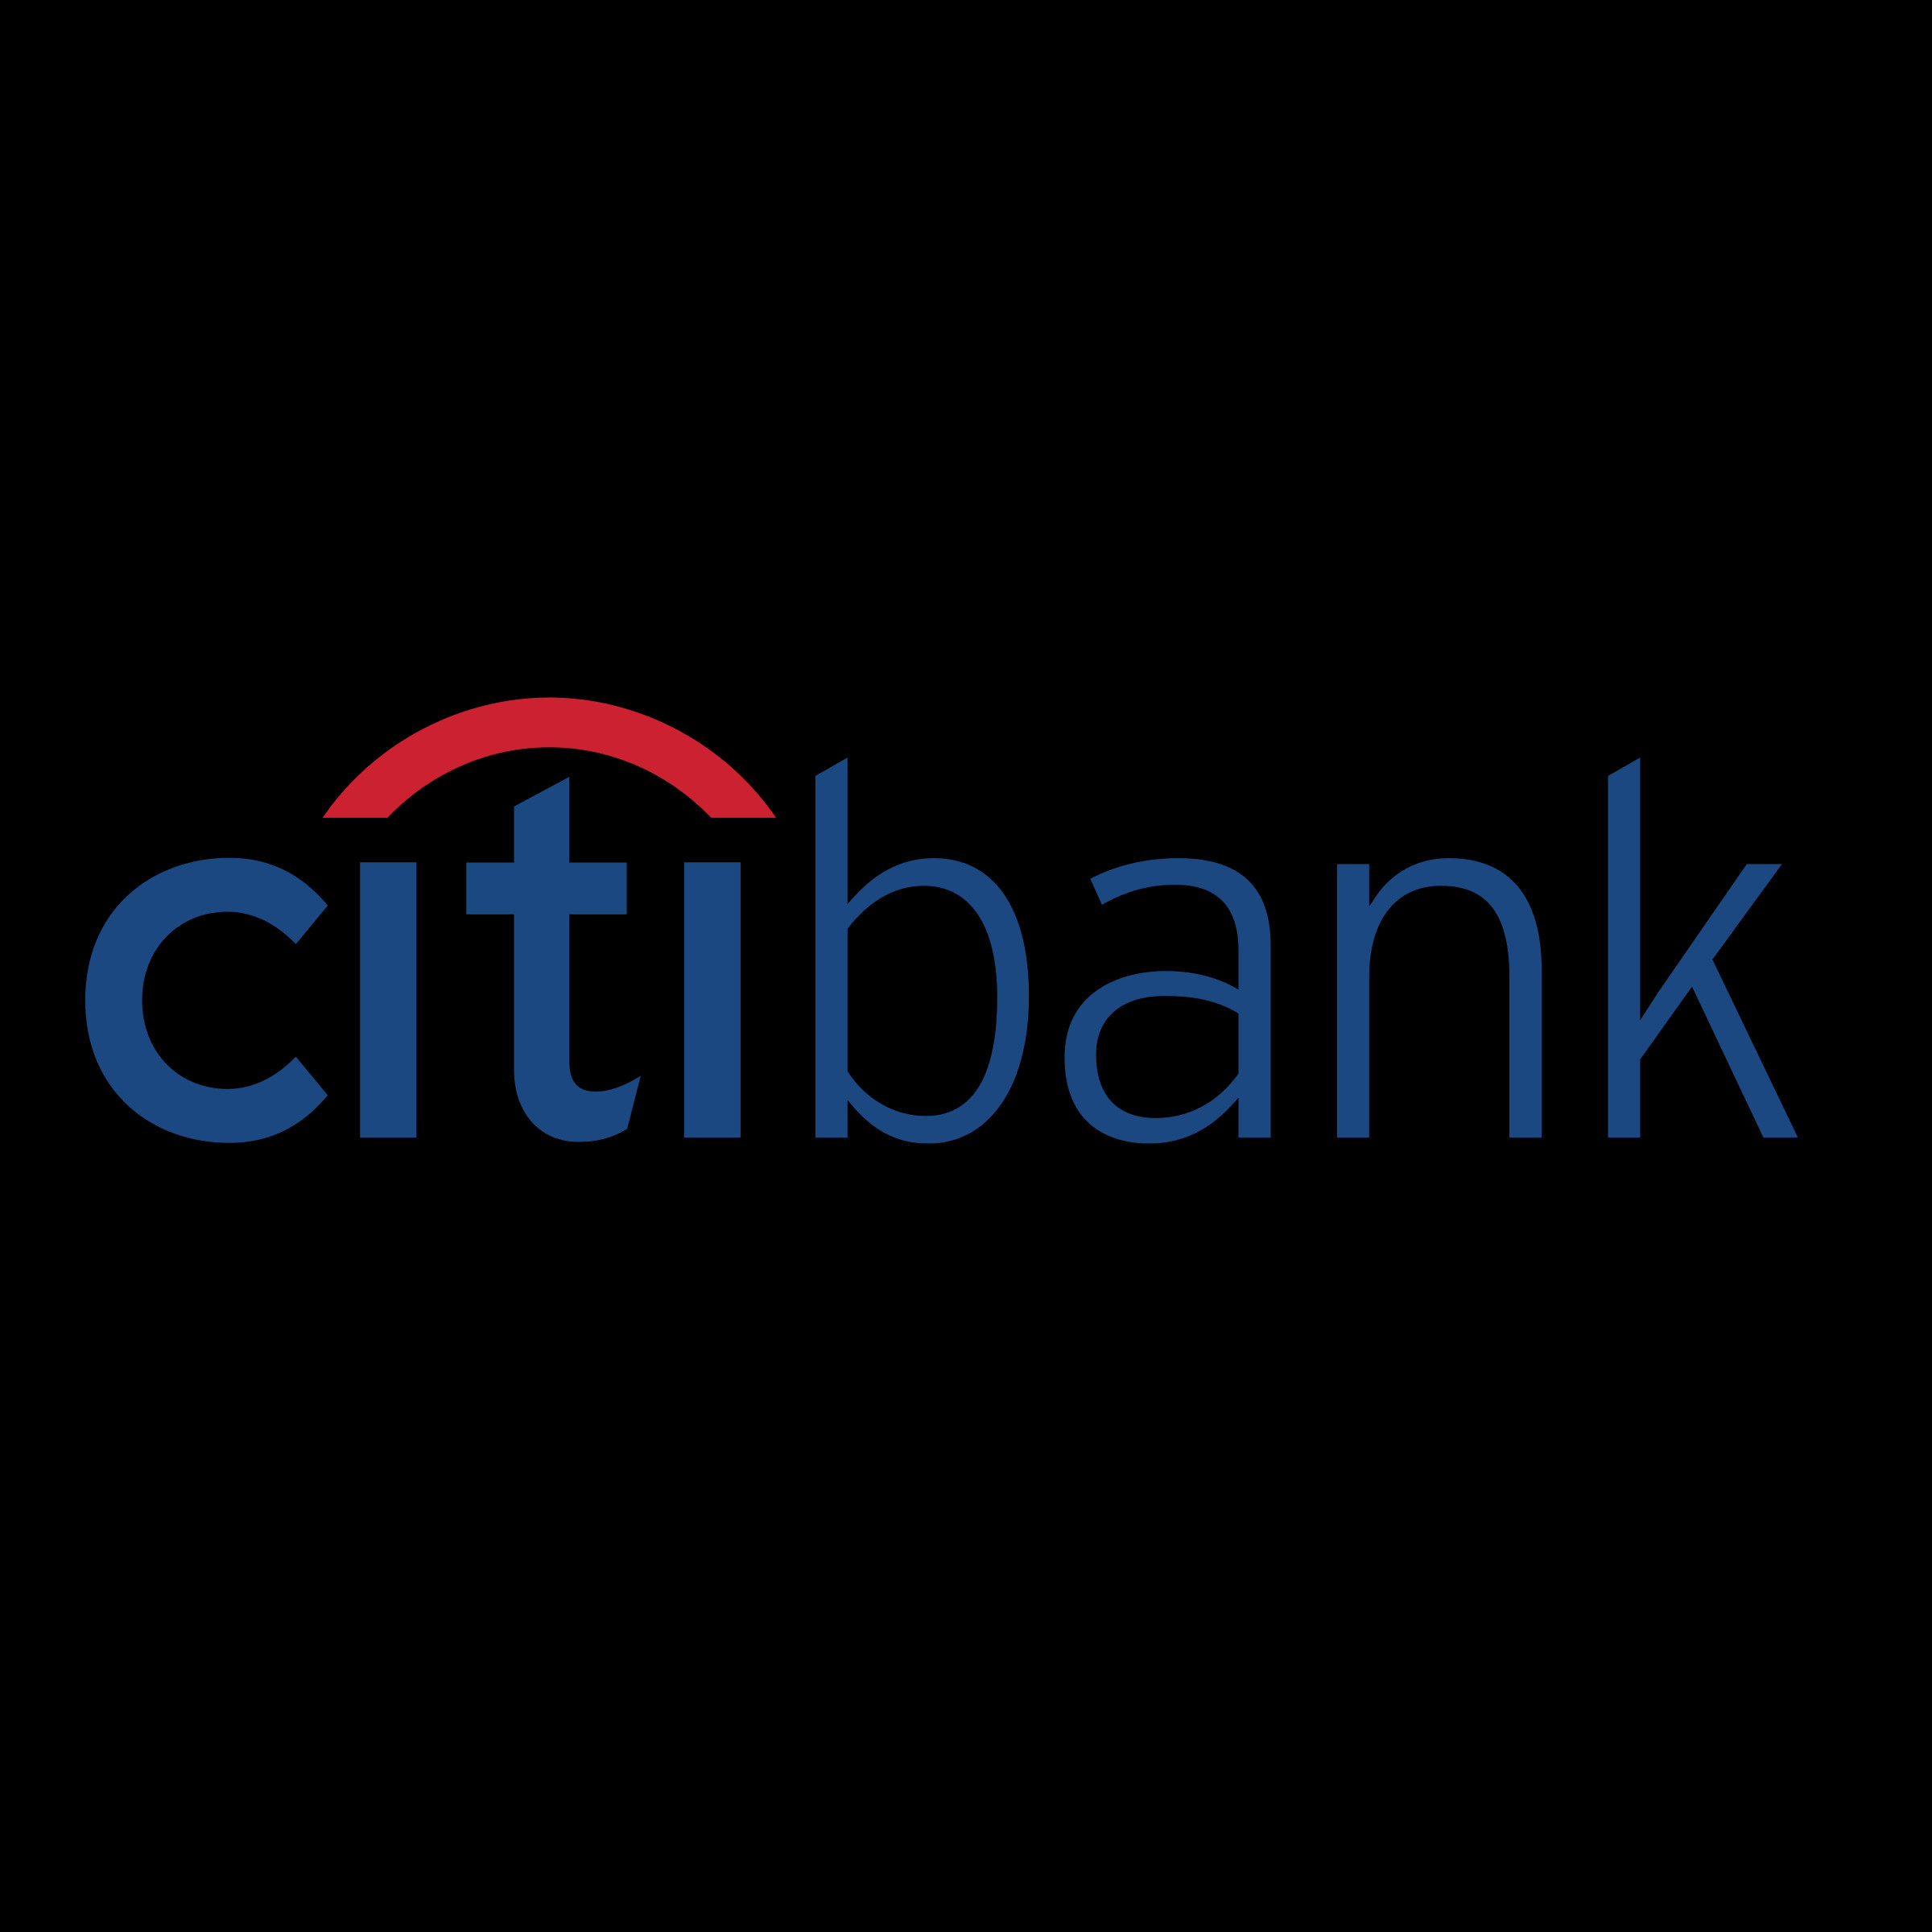 Consumption Clipart 20 Free Cliparts: Citibank Png 20 Free Cliparts